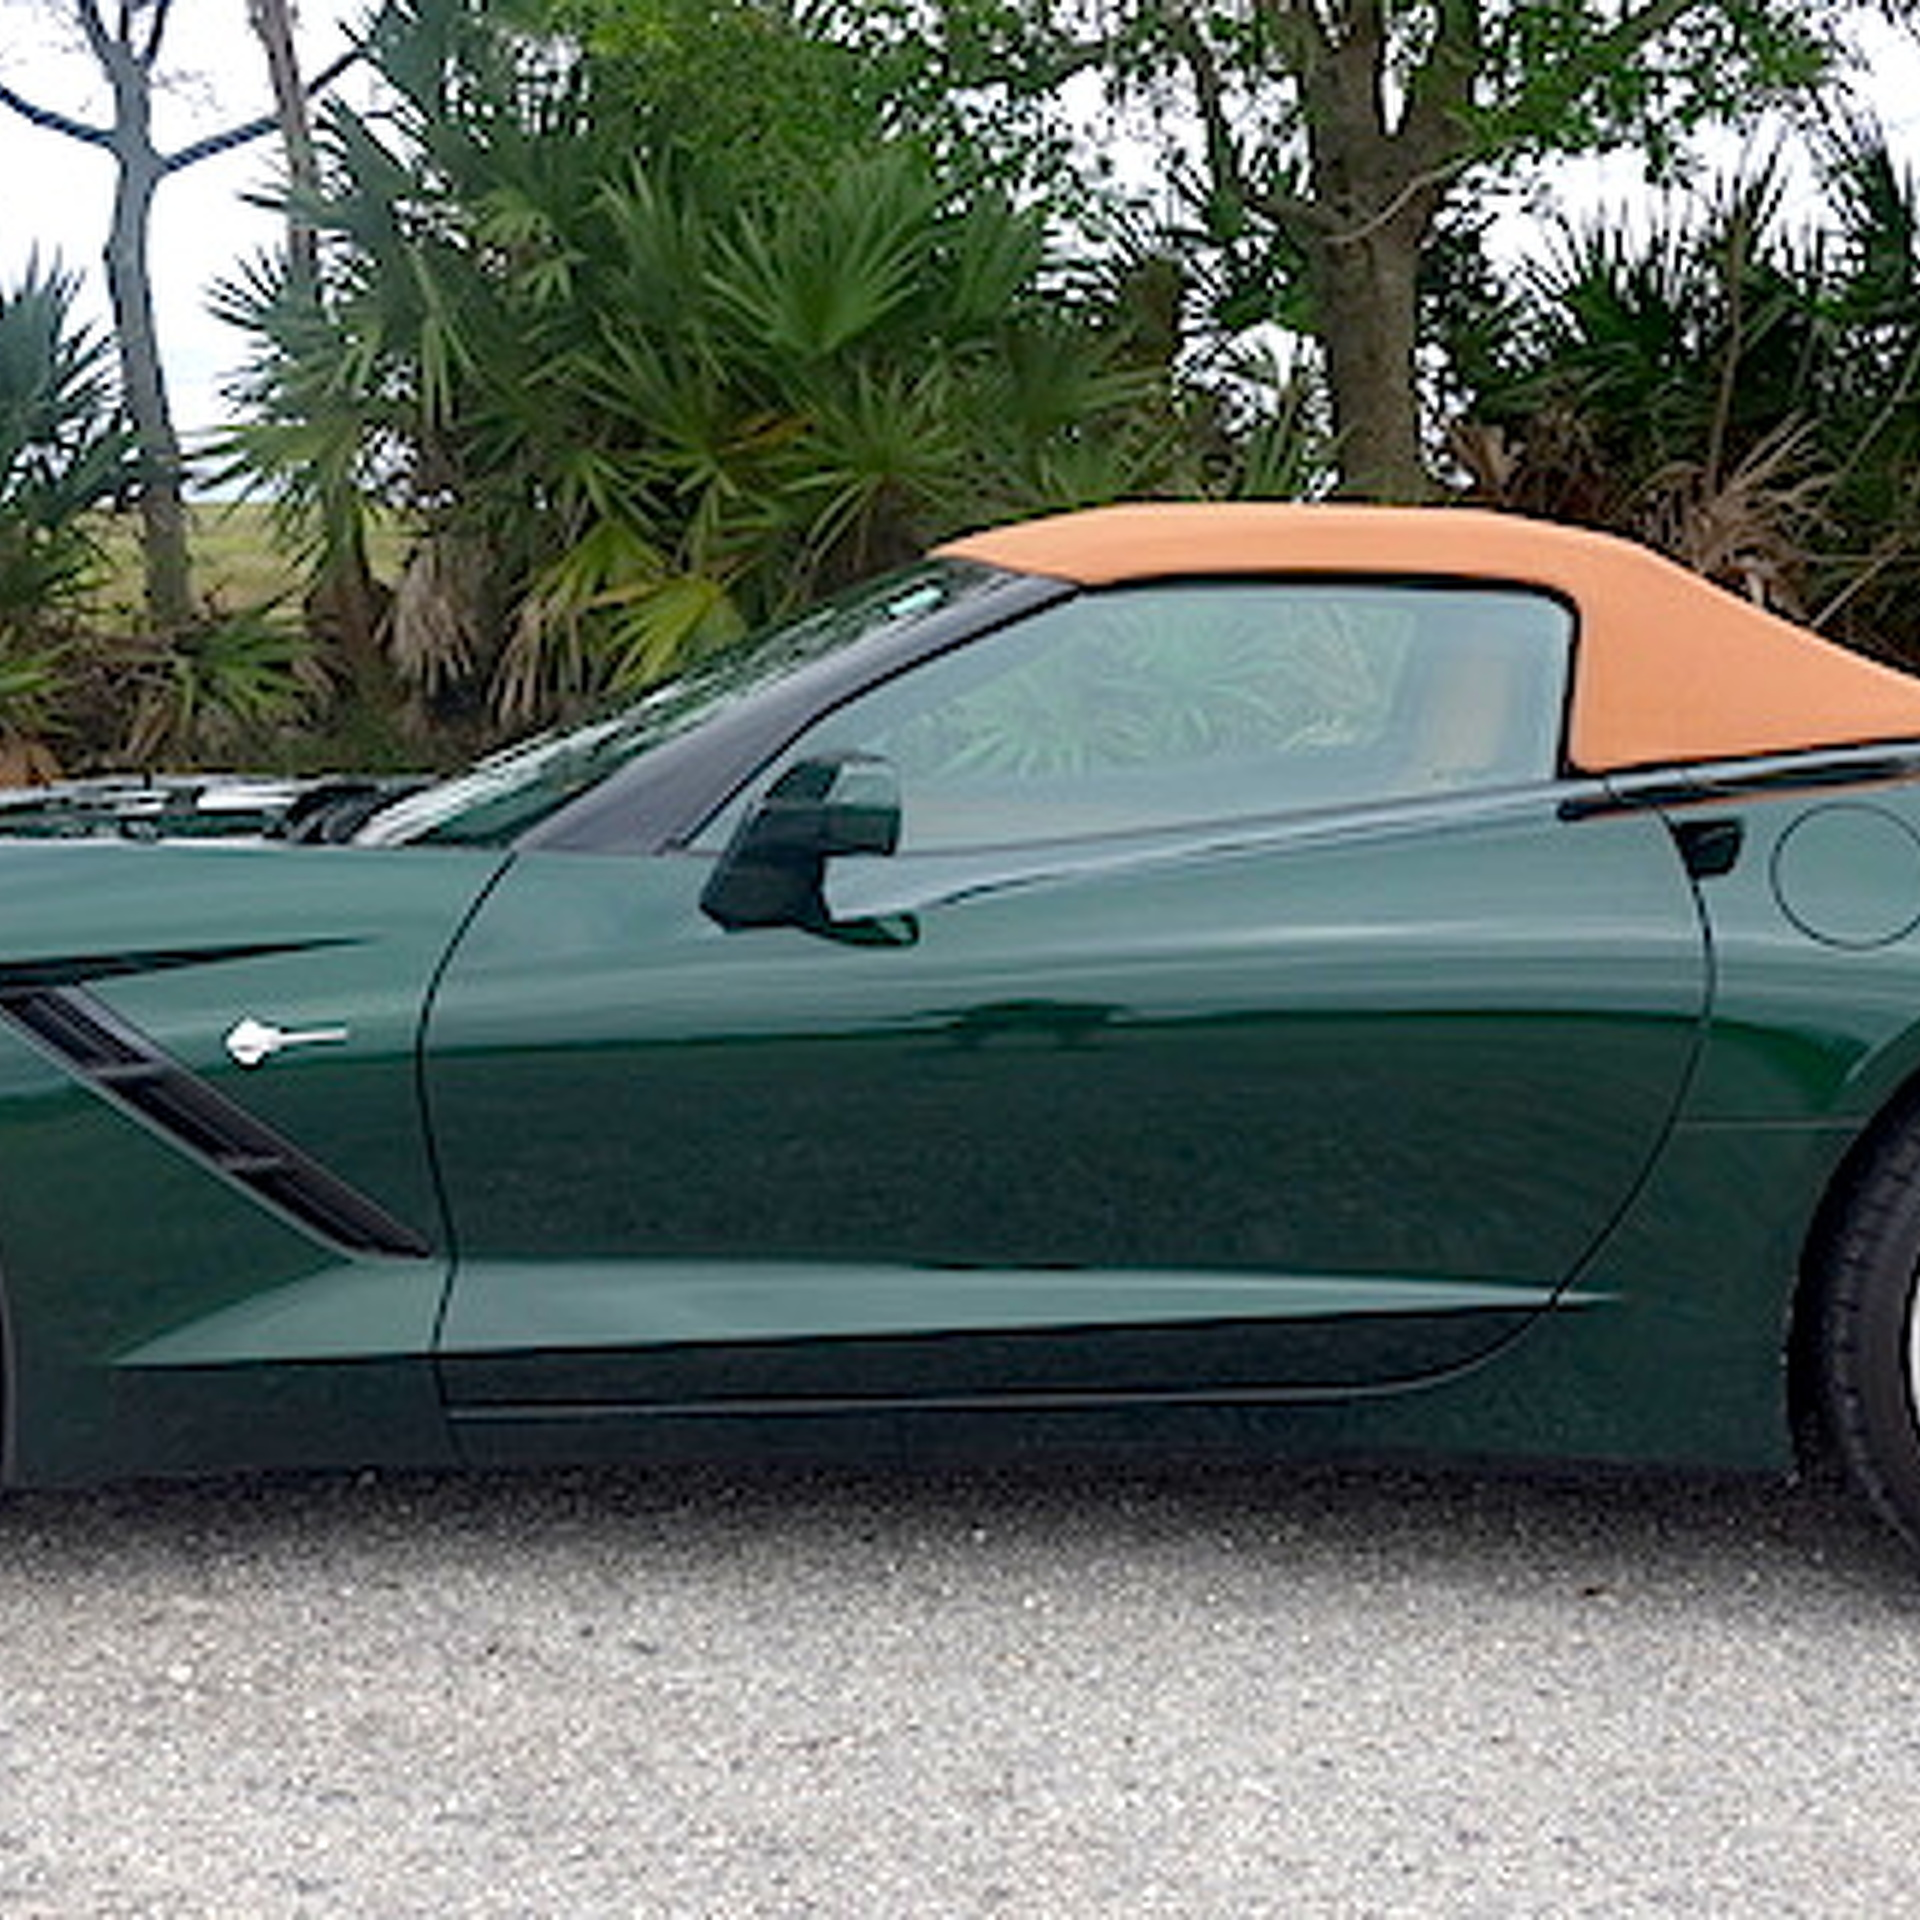 2014 Corvette Convertible Review: Intoxicating, American Speed